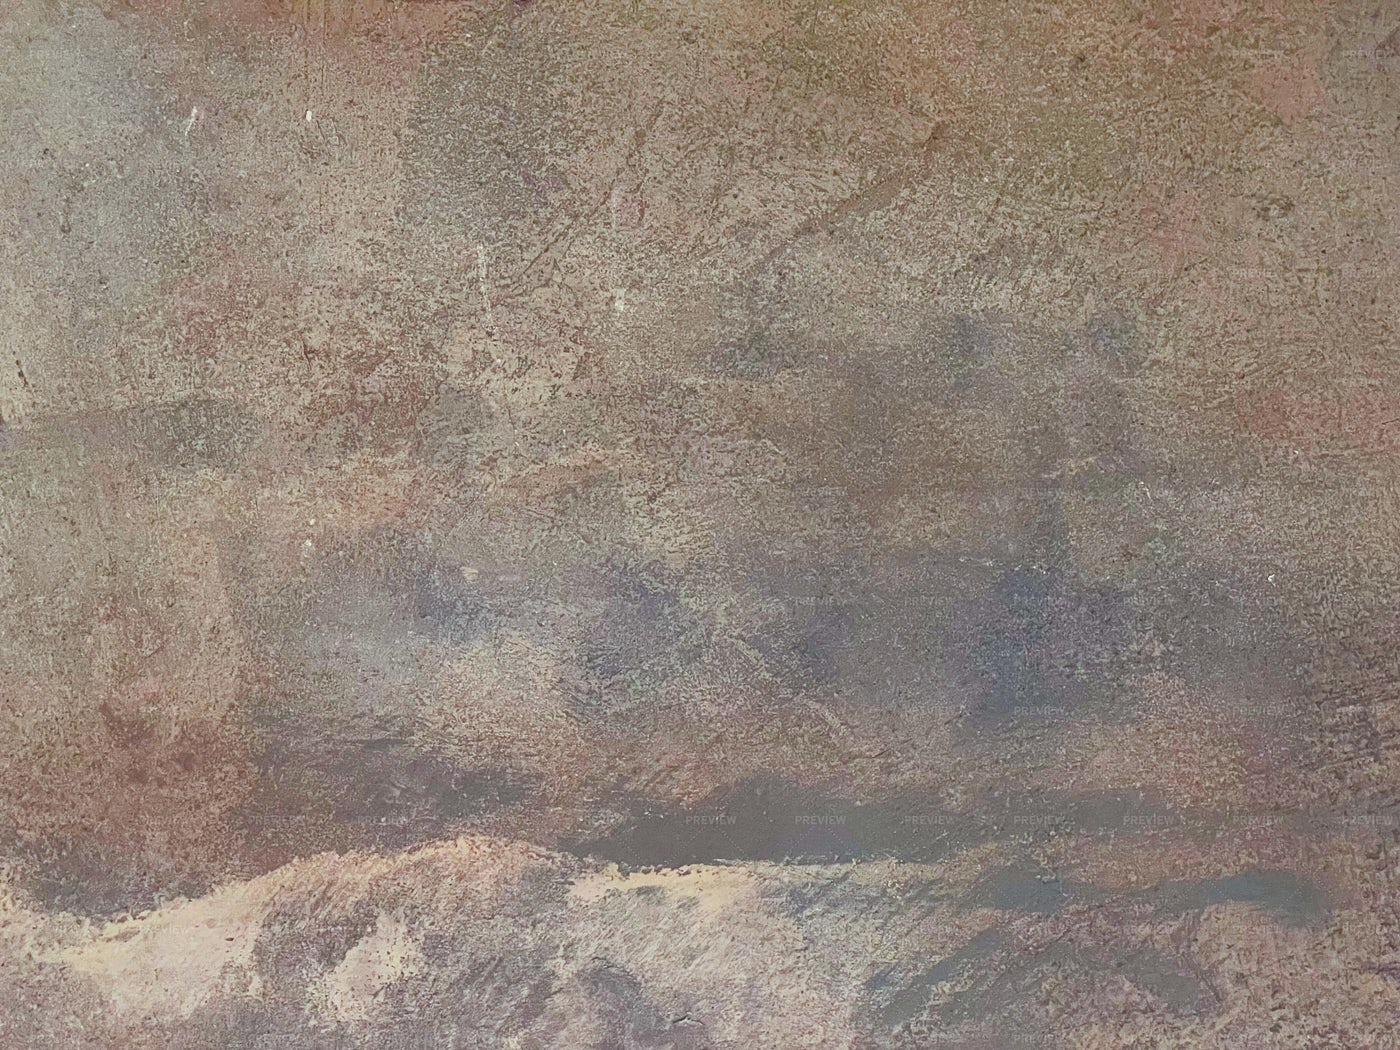 Rusted And Grunge Textured Background: Stock Photos